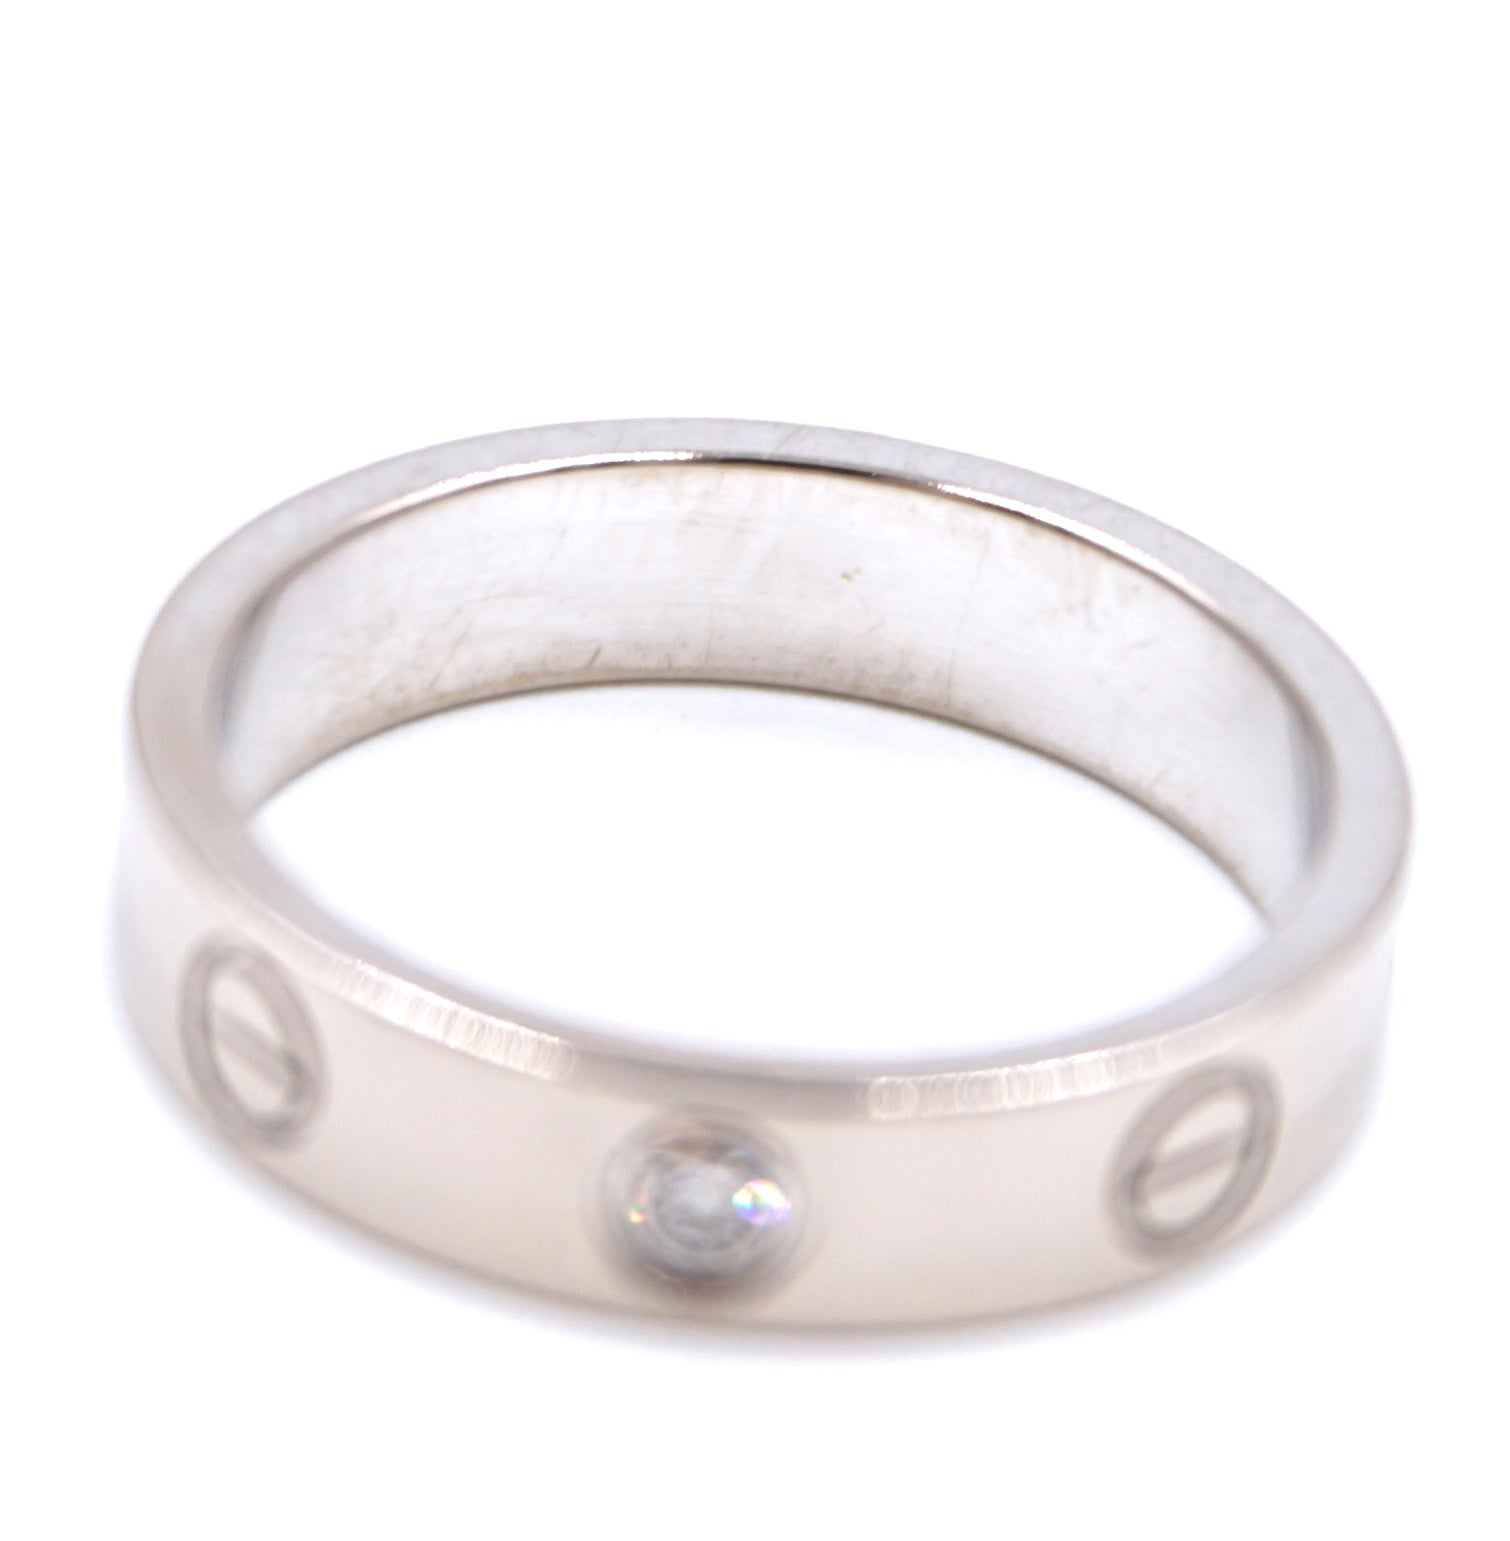 Cartier White Gold 18k 750 1p Diamond Love Ring Size 49